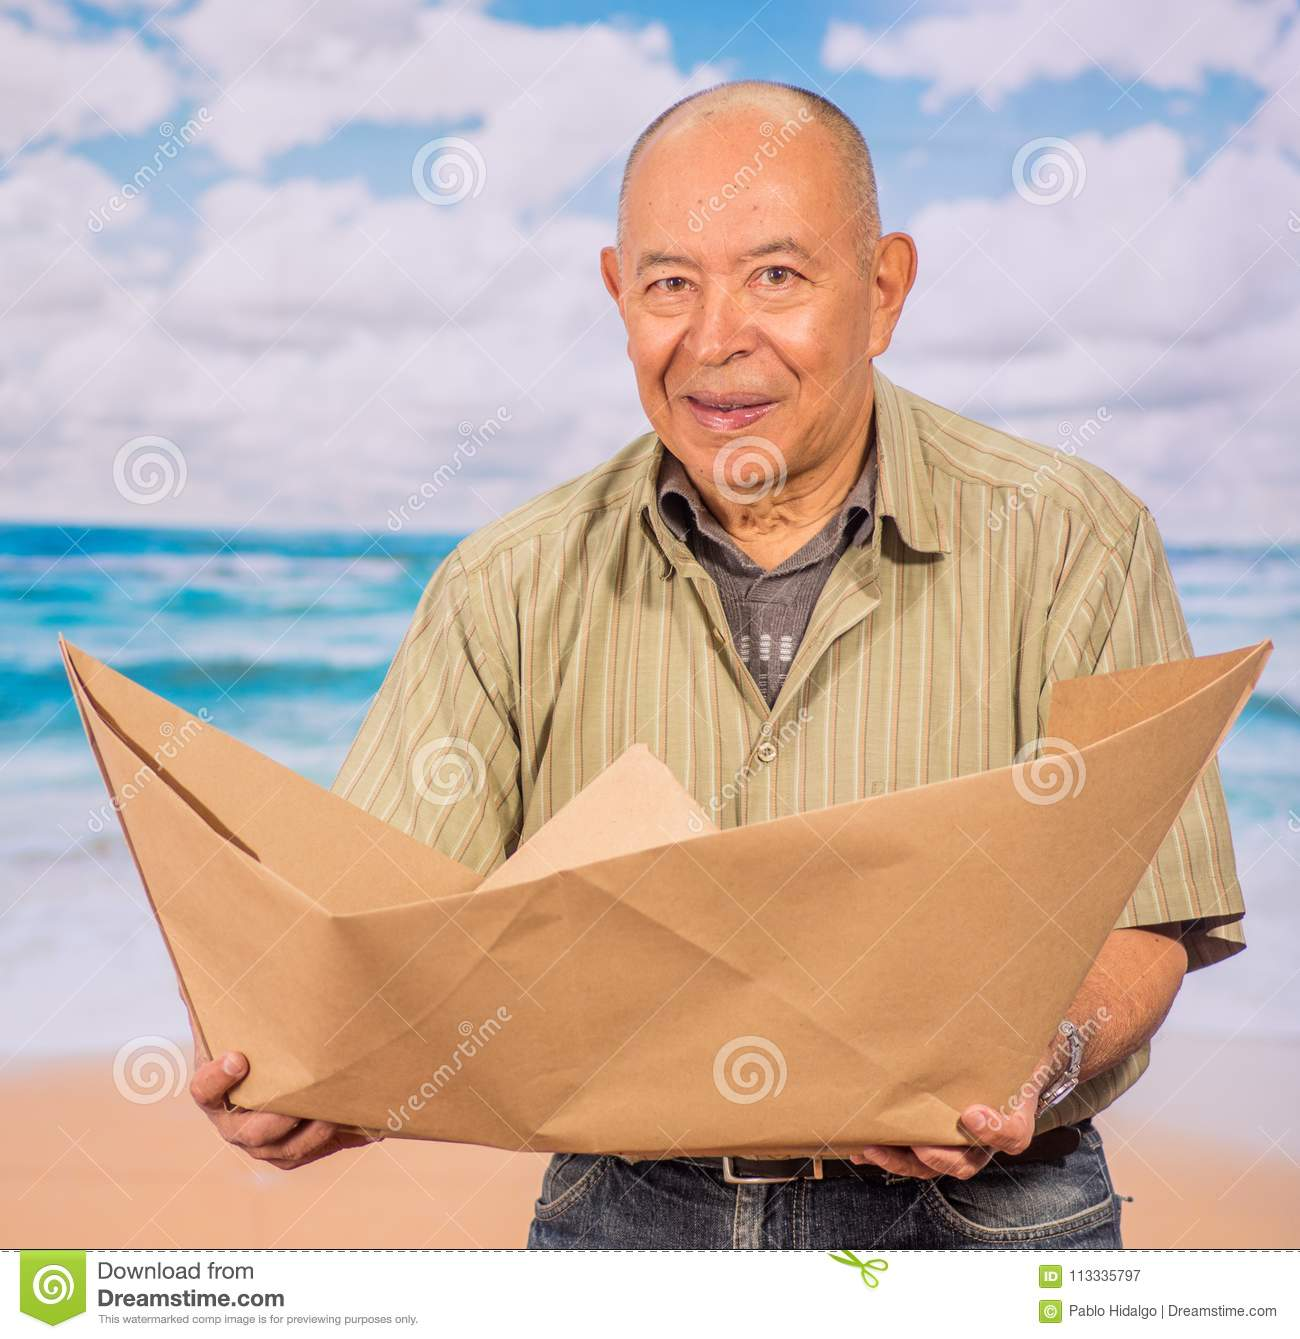 Close up of mature man with brown paper origami boat, concept for aspirations, leadership, strategy or just boredom in